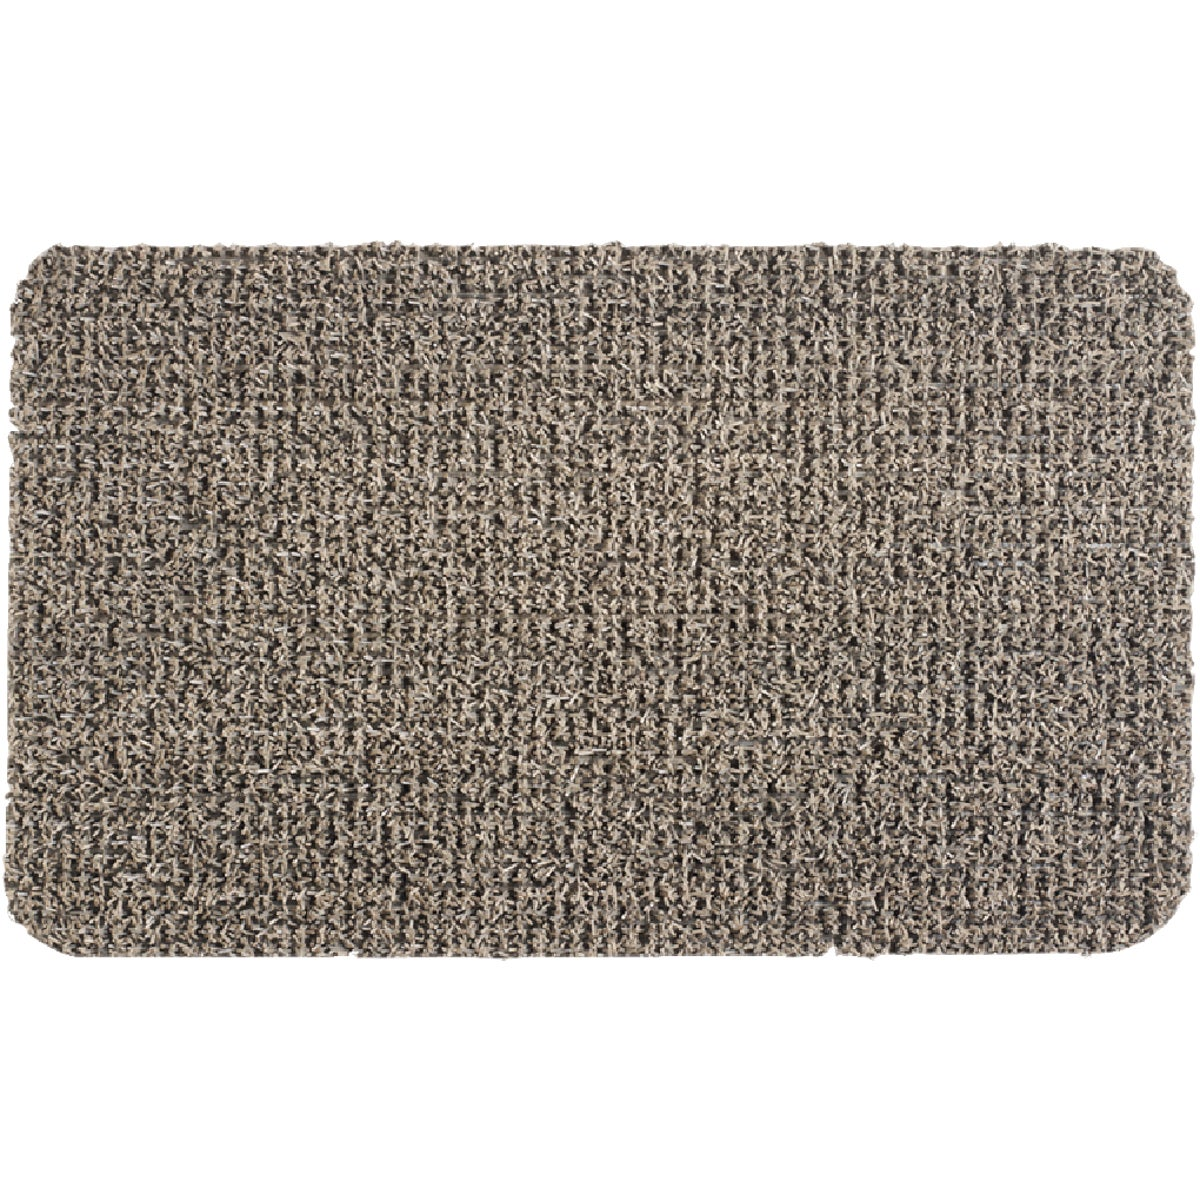 TAUPE DOORMAT - 10254597 by Grassworx